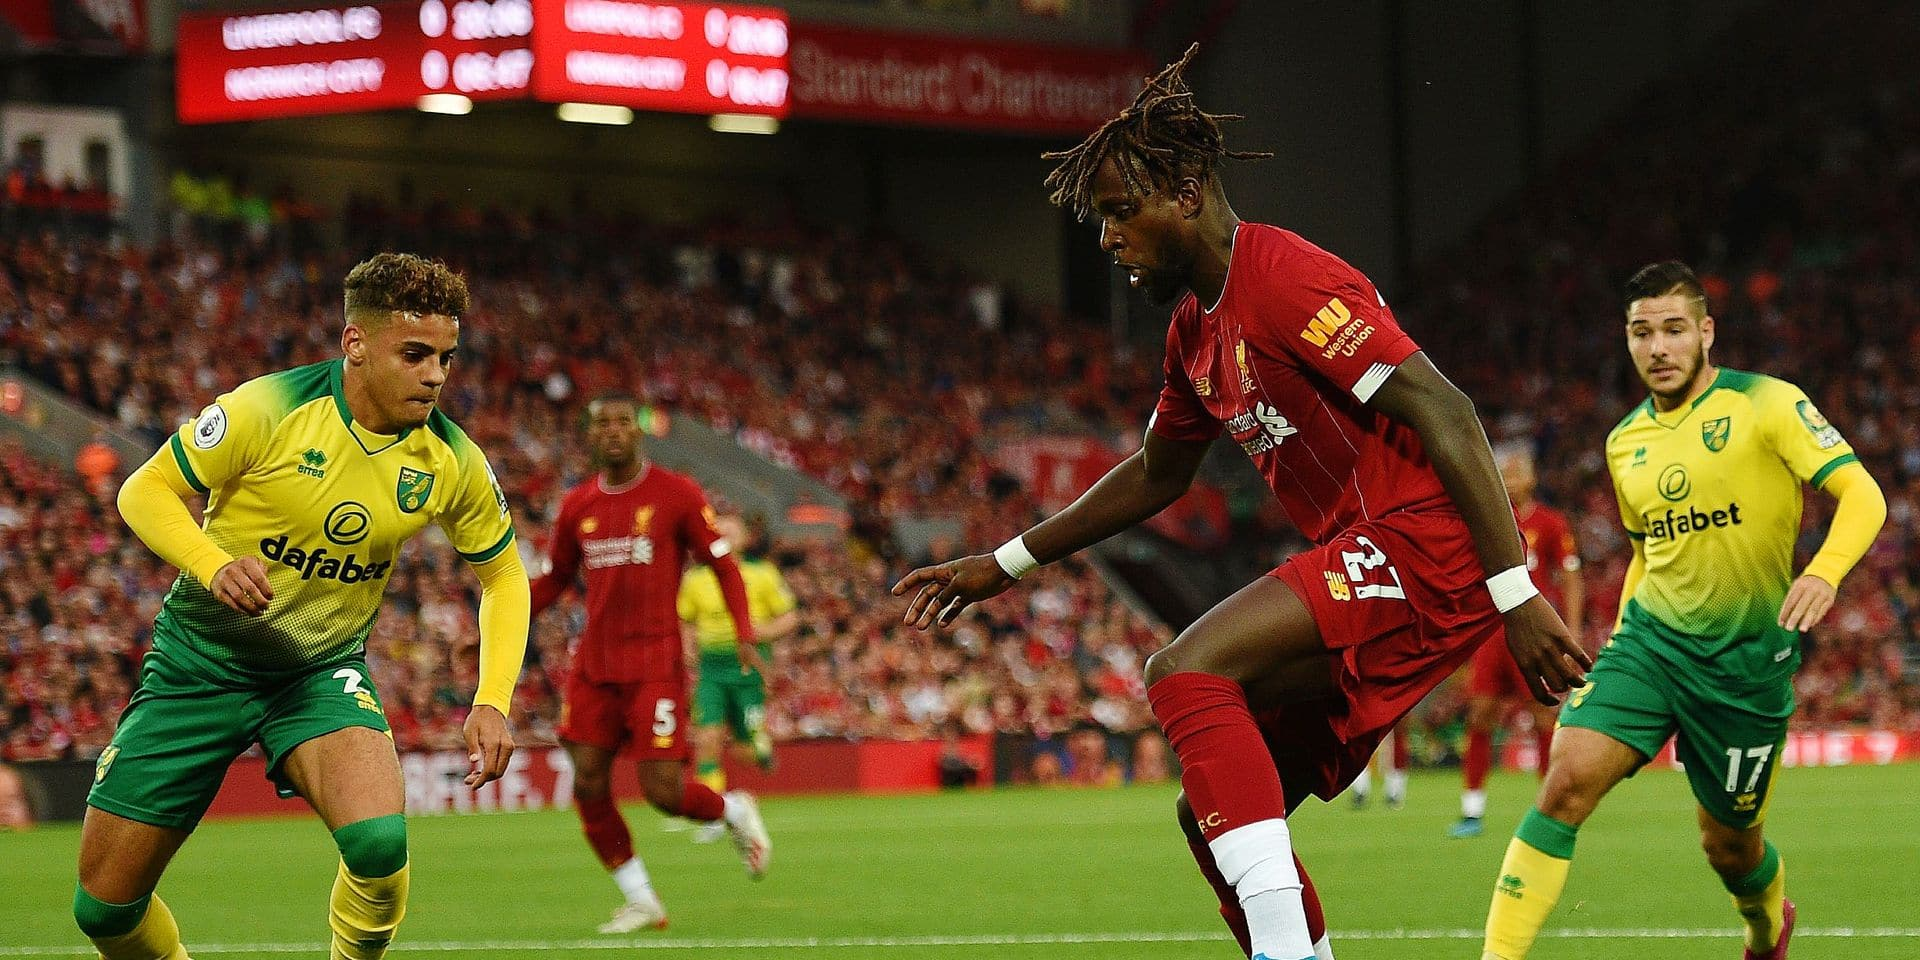 Liverpool's Belgium striker Divock Origi (C) controls the ball during the English Premier League football match between Liverpool and Norwich City at Anfield in Liverpool, north west England on August 9, 2019. (Photo by Oli SCARFF / AFP) / RESTRICTED TO EDITORIAL USE. No use with unauthorized audio, video, data, fixture lists, club/league logos or 'live' services. Online in-match use limited to 120 images. An additional 40 images may be used in extra time. No video emulation. Social media in-match use limited to 120 images. An additional 40 images may be used in extra time. No use in betting publications, games or single club/league/player publications. /